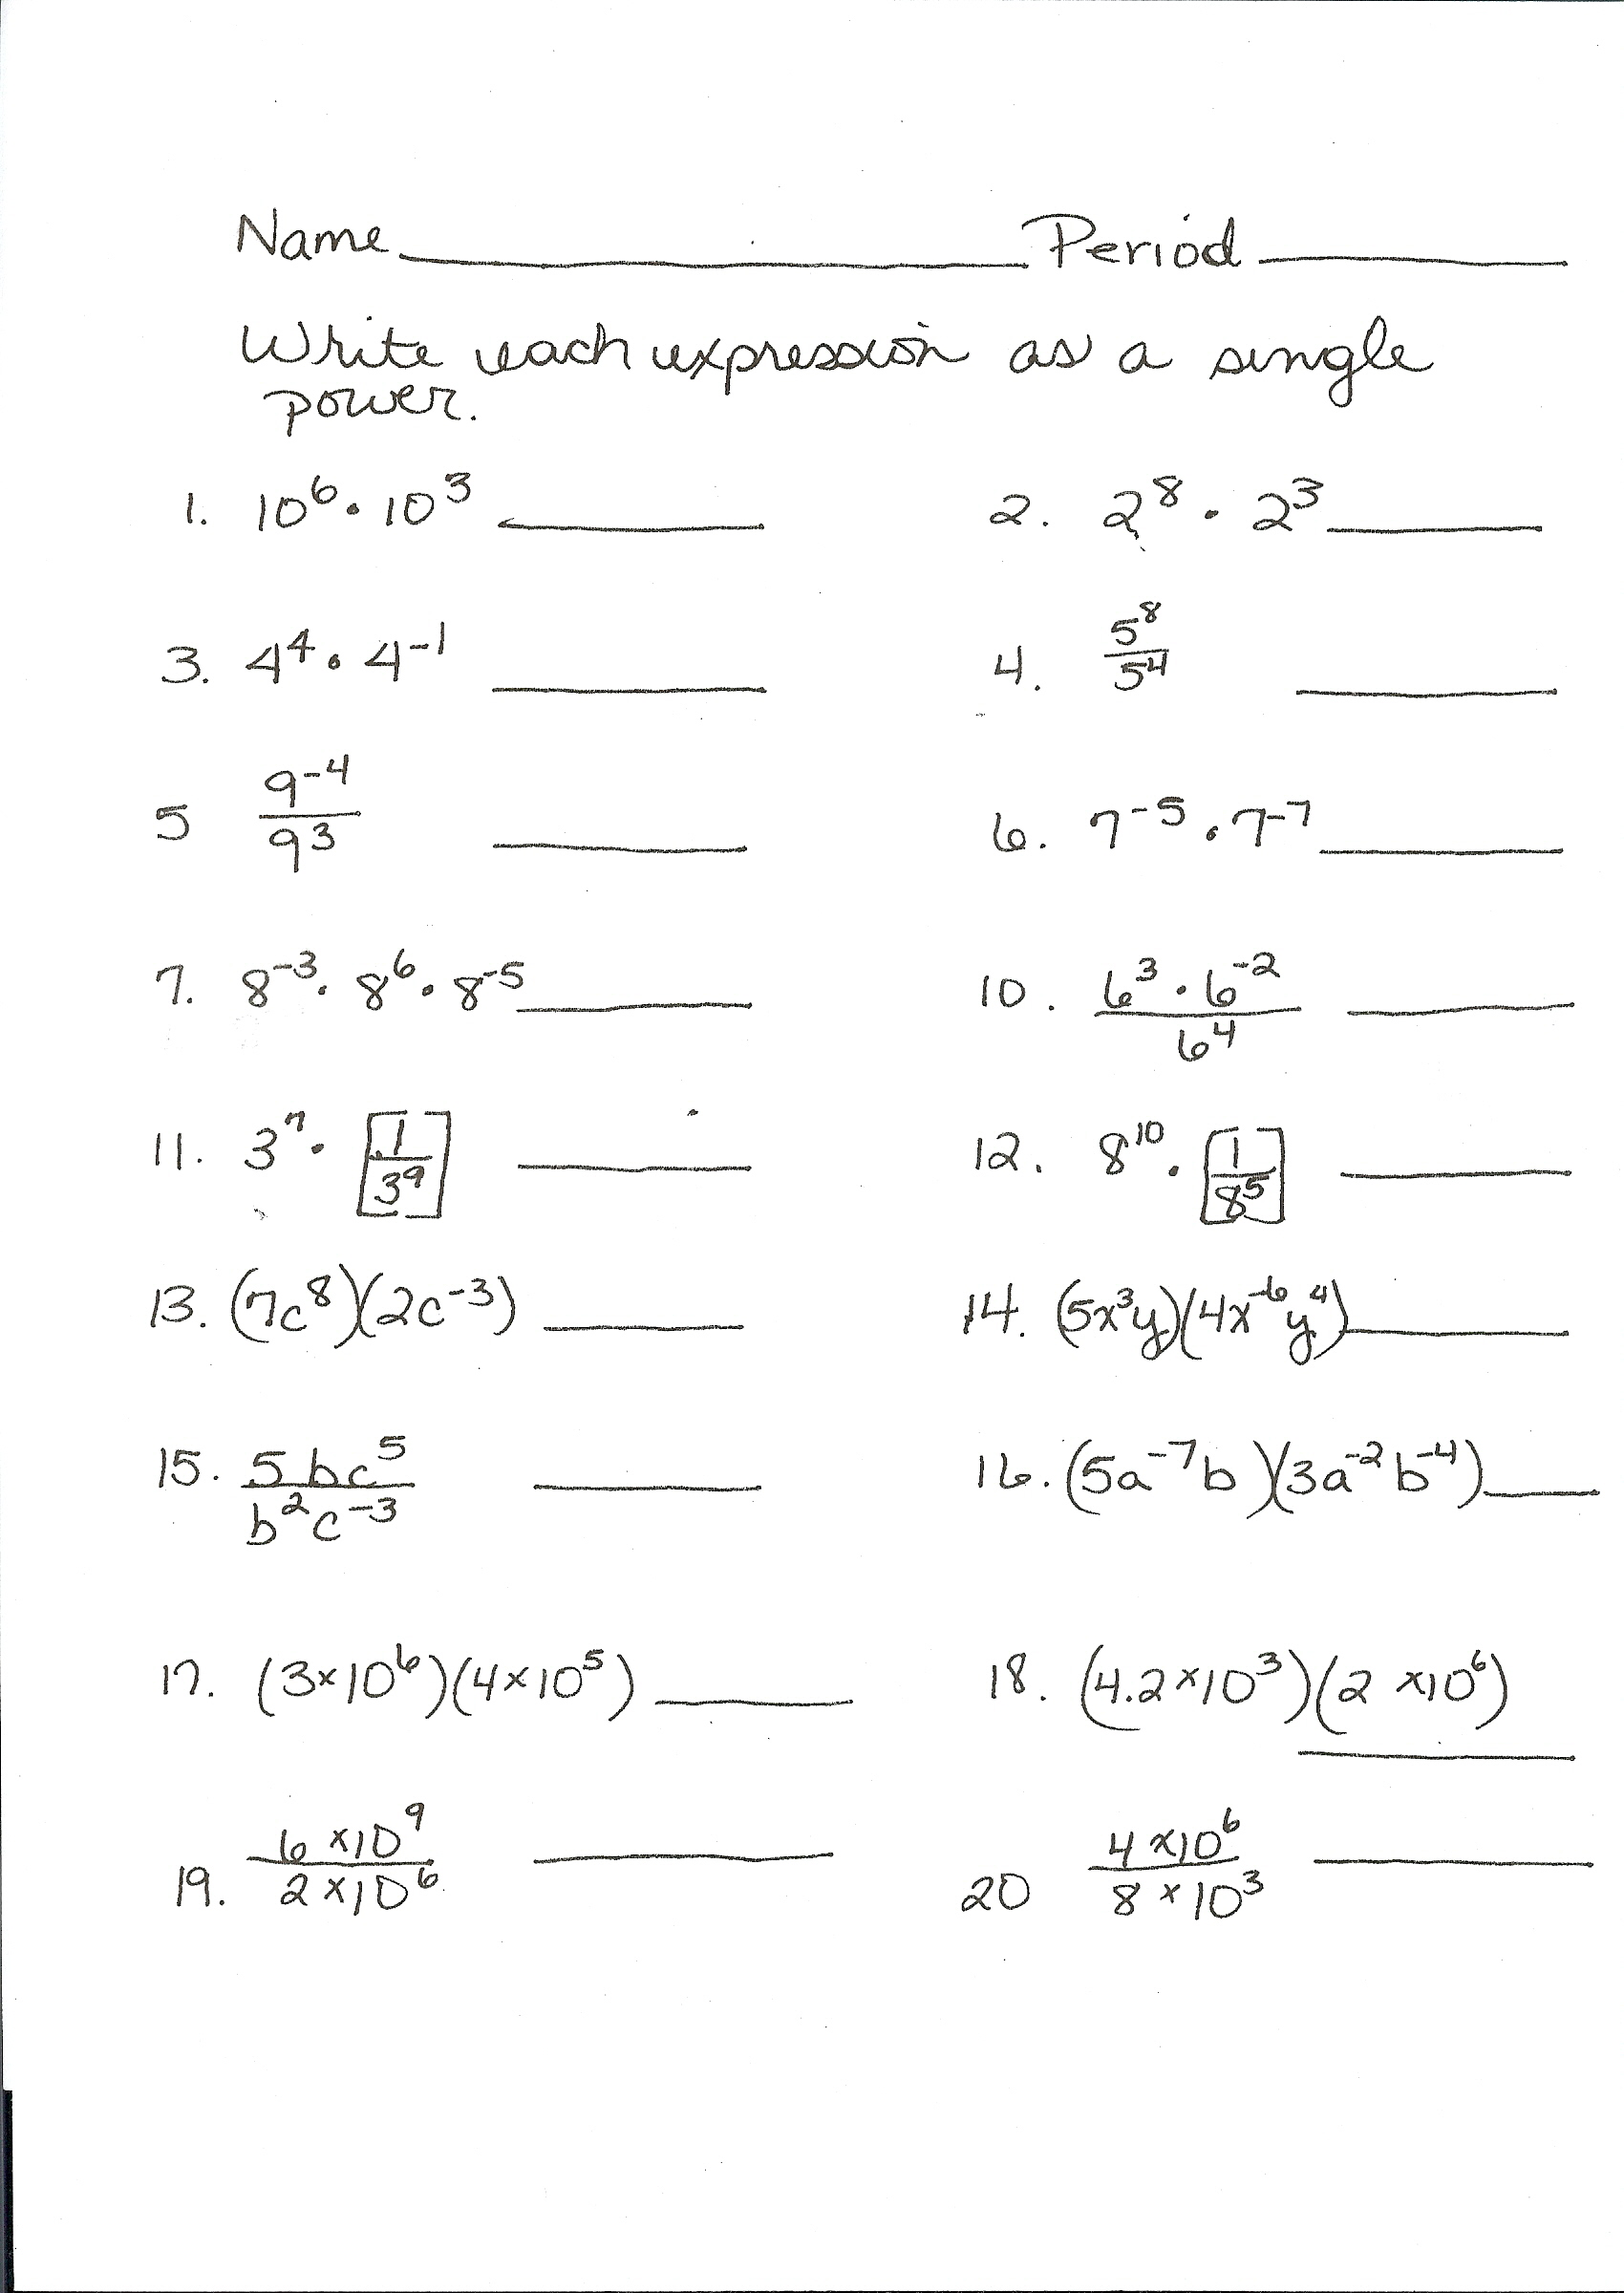 Worksheets 3rd Grade Math Staar Test Practice Worksheets wisniewski boyd welcome exponent practice page 1 and 2 math 8 only activity sheet review staar all 10 staar